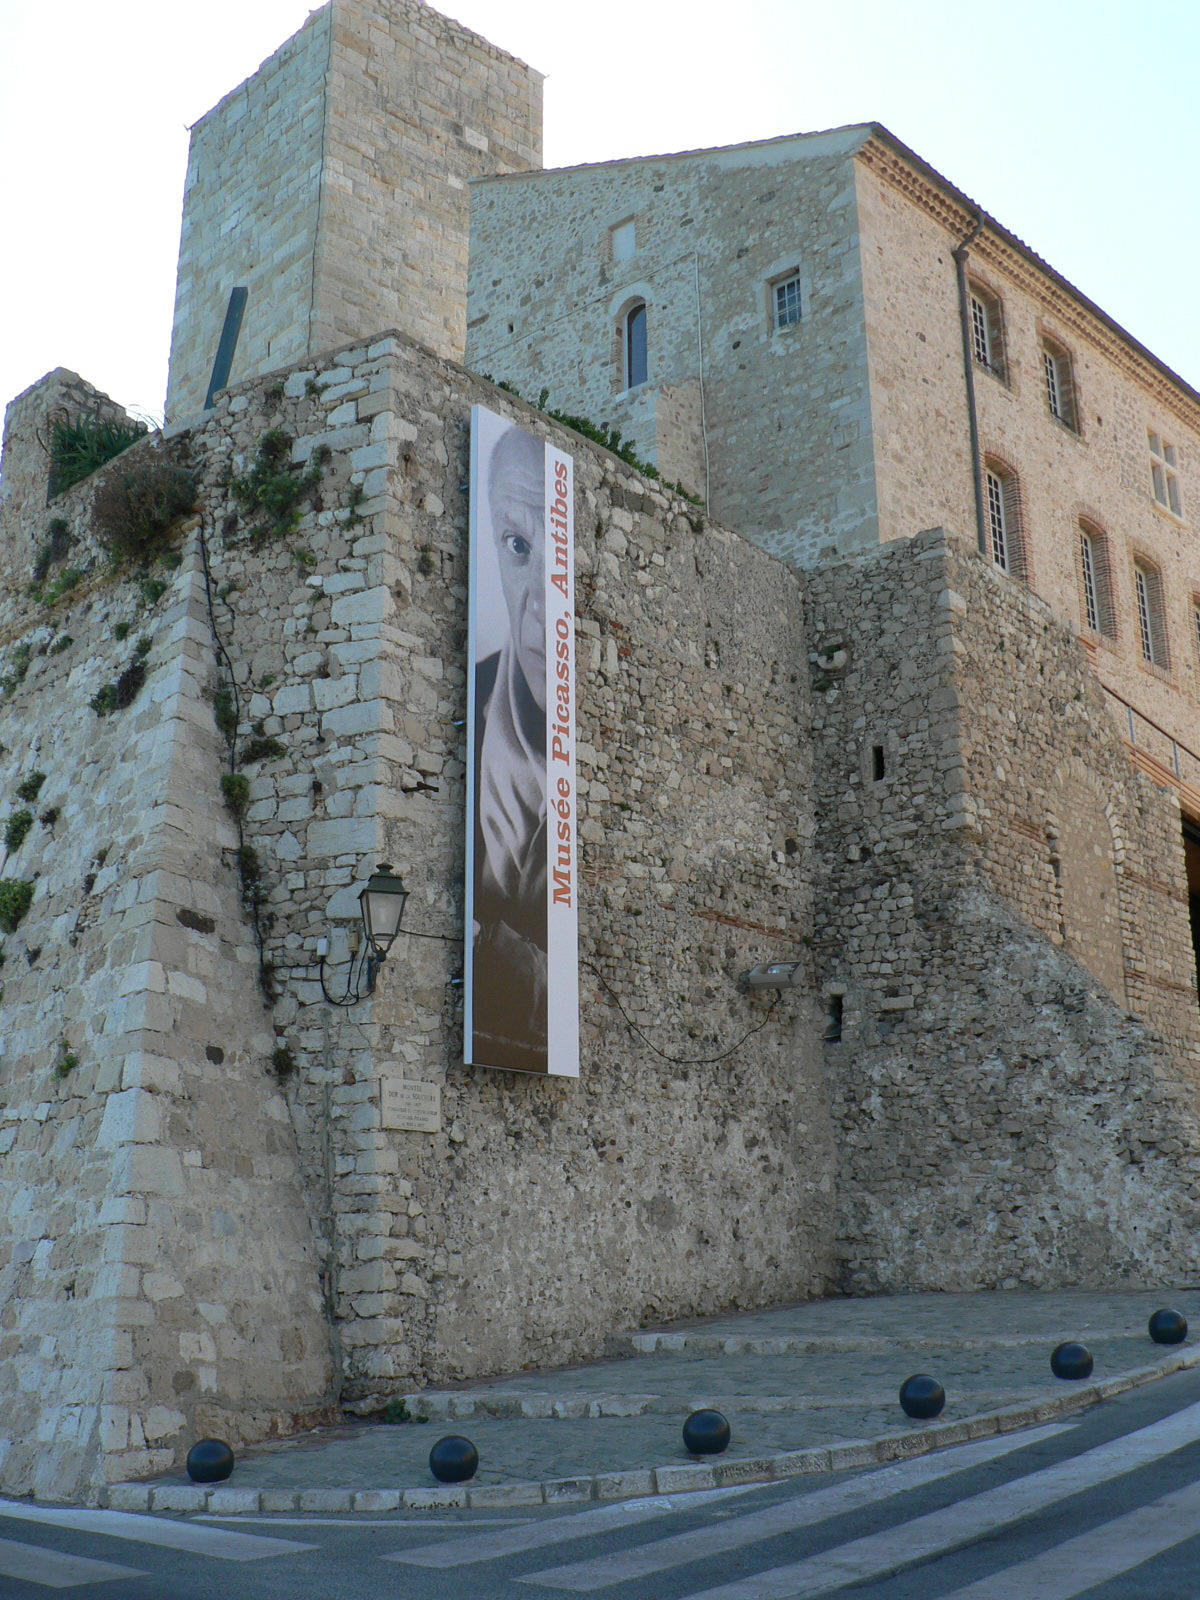 https://upload.wikimedia.org/wikipedia/commons/2/20/Mus%C3%A9e_Picasso_Antibes.jpg